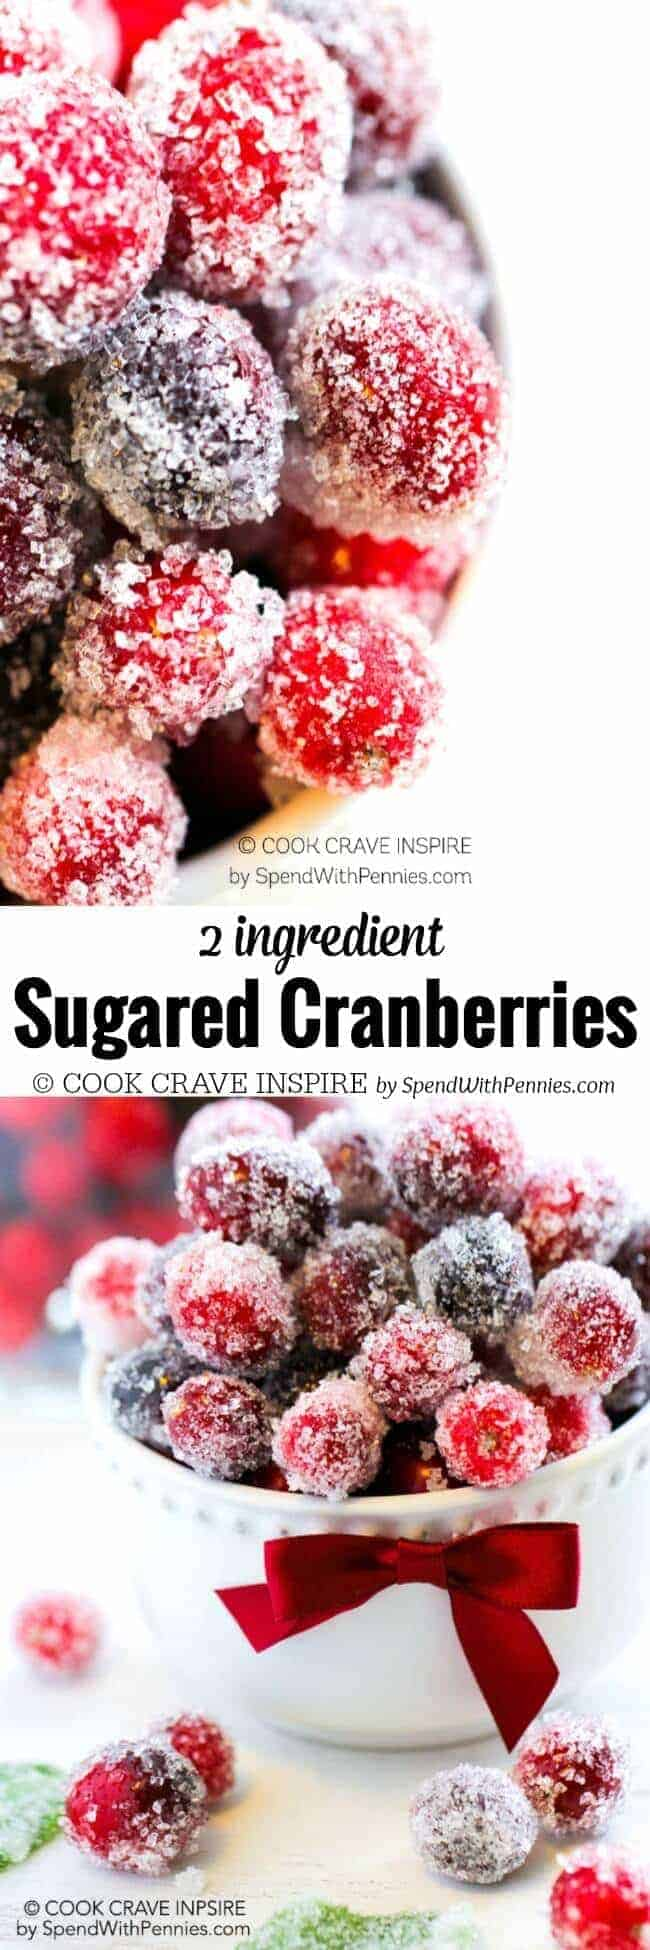 2 Ingredient Sugared Cranberries in a bowl with writing